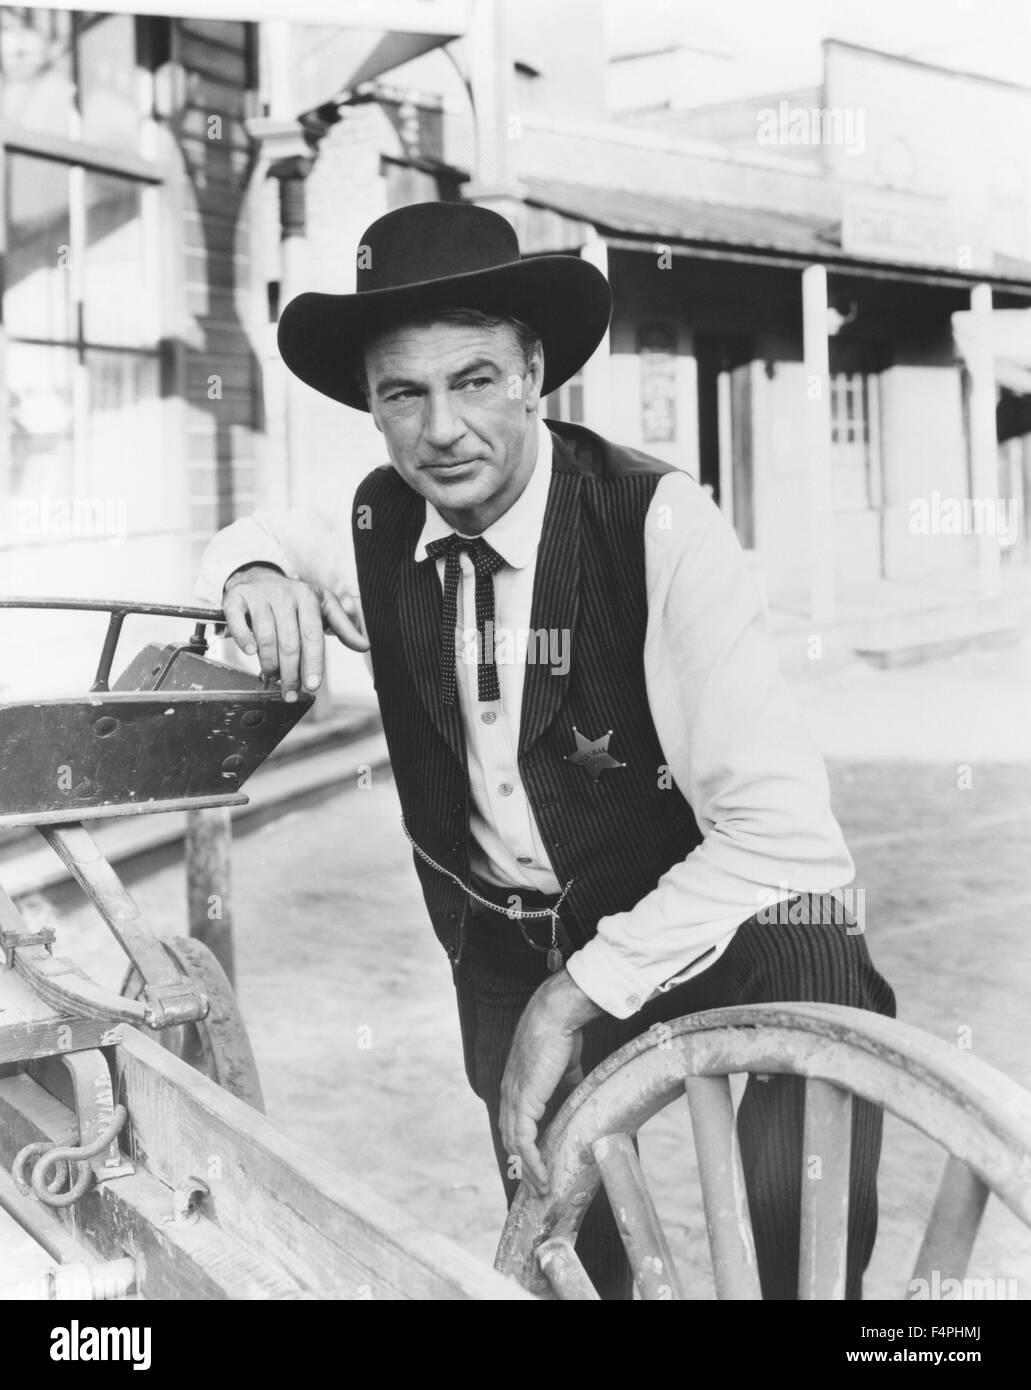 Gary Cooper / High Noon / 1952 directed by Fred Zinnemann [United Artists] - Stock Image